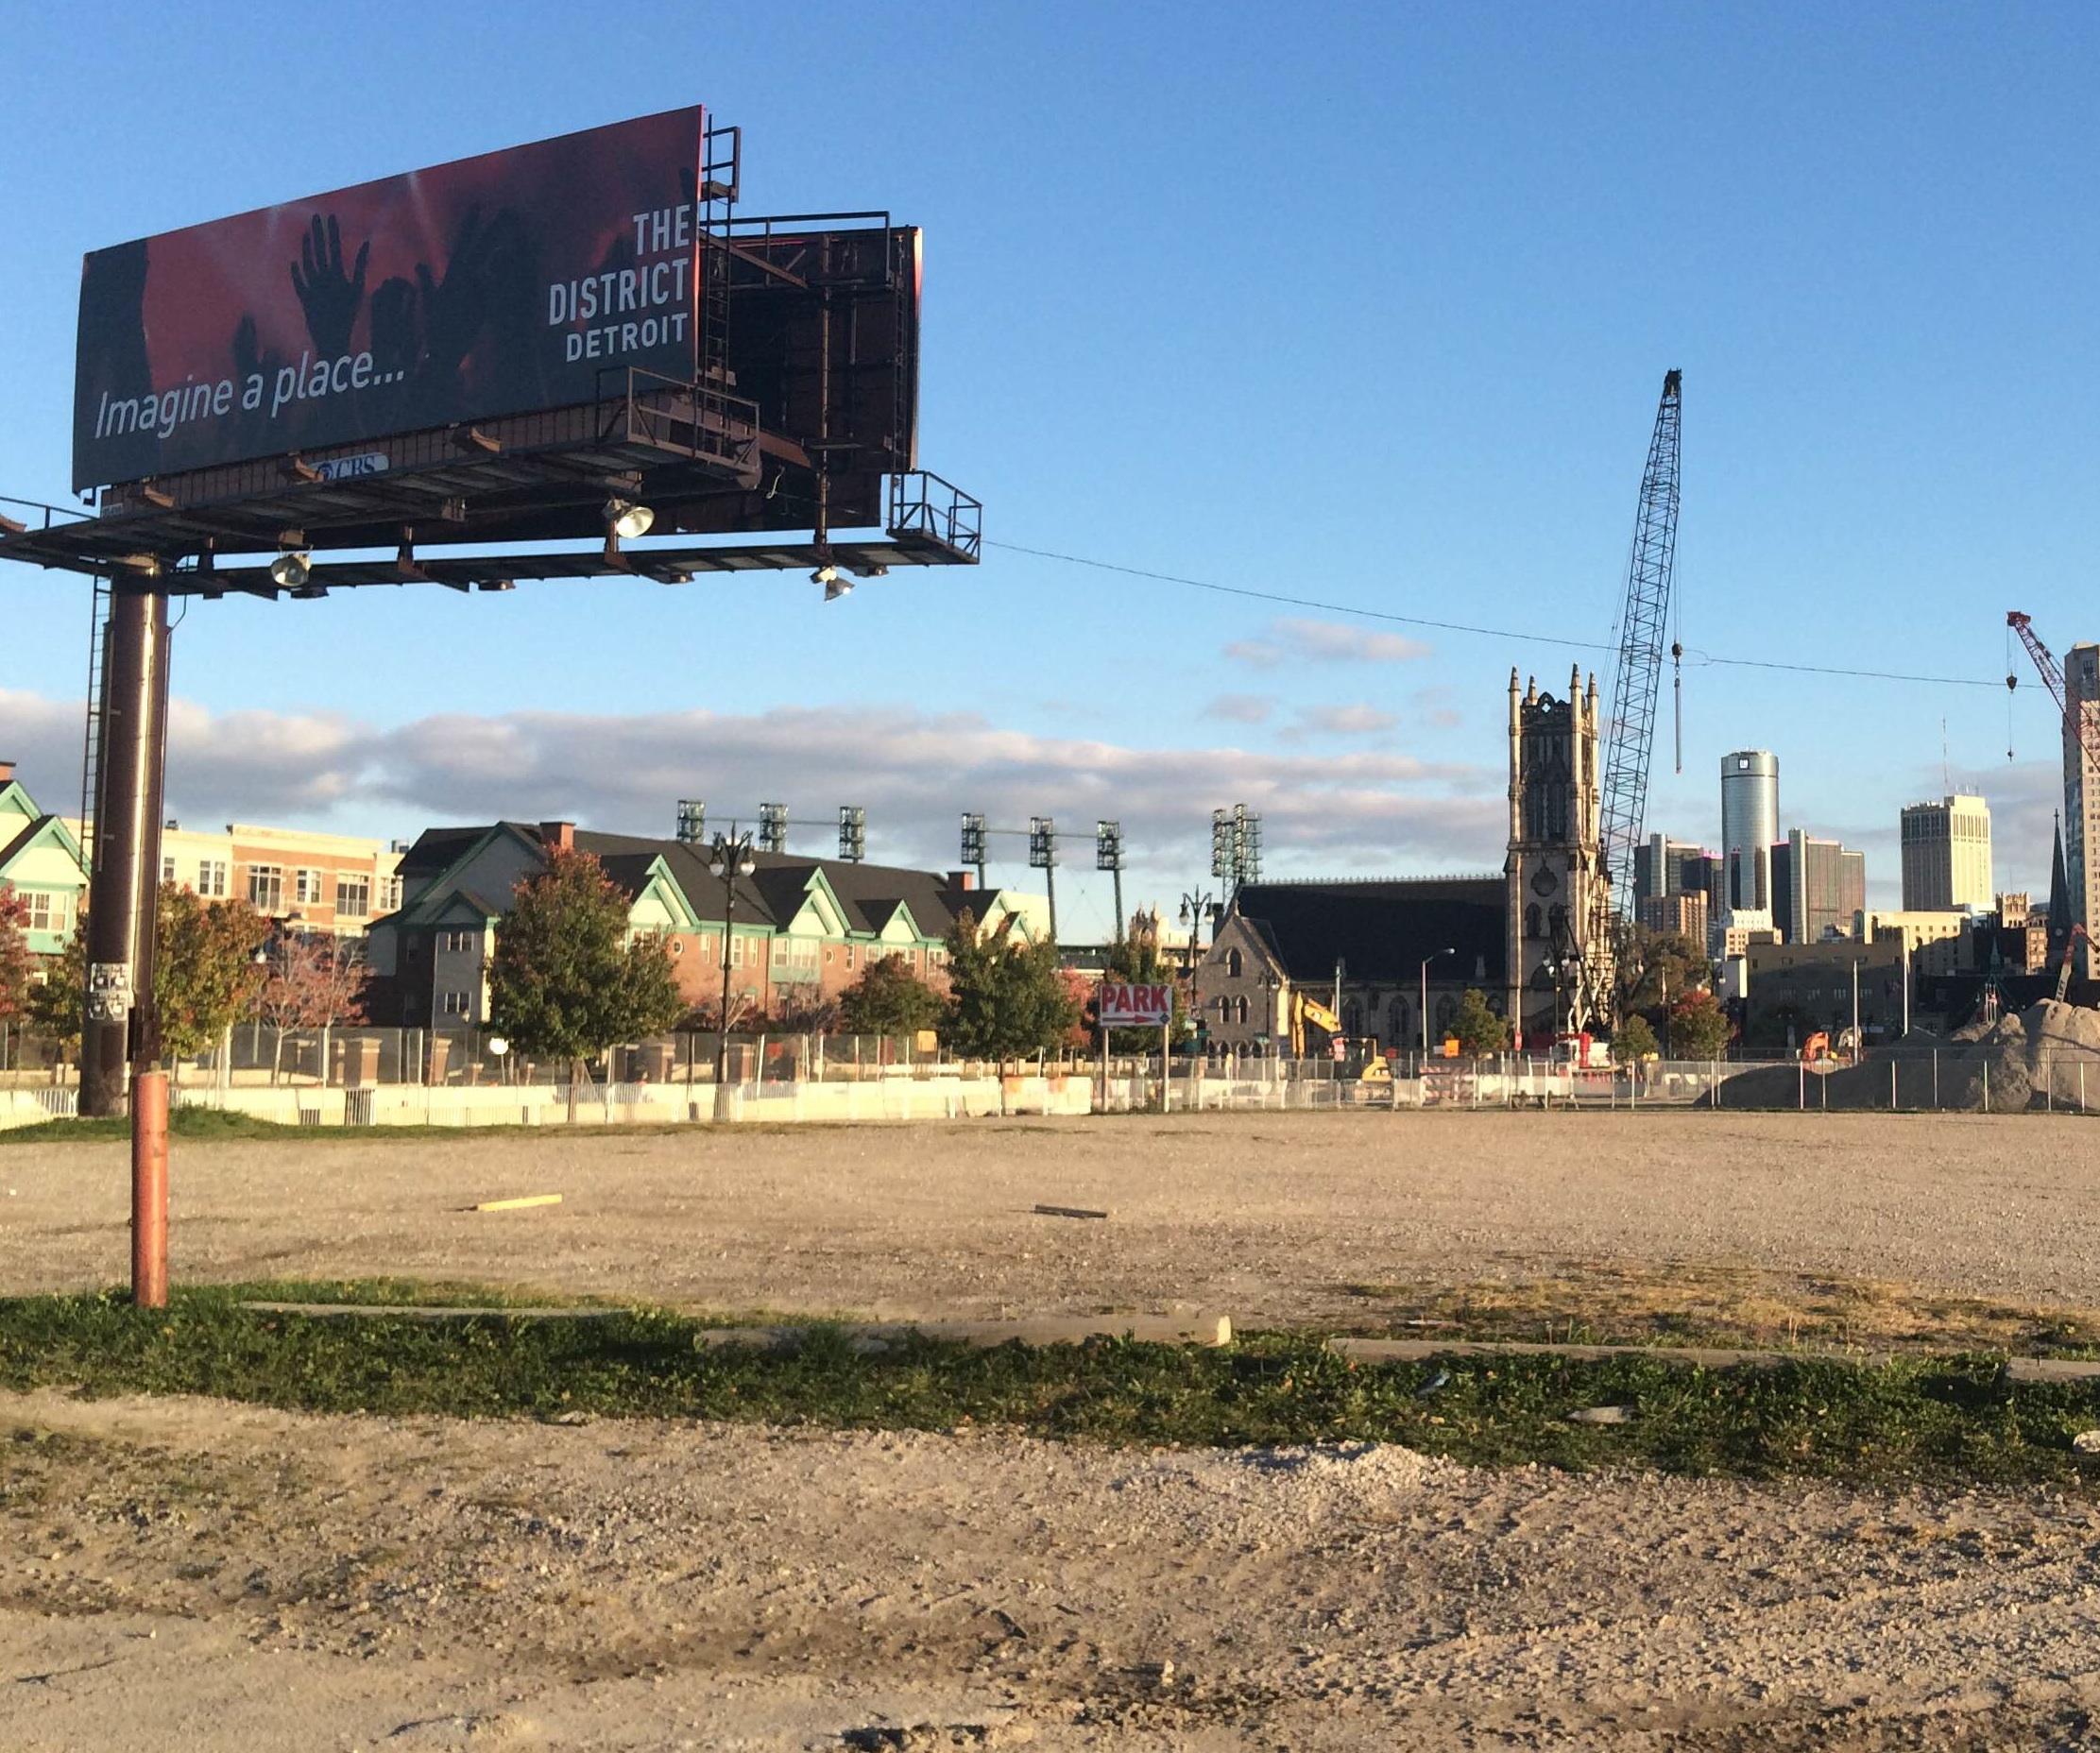 Arena Vision Lights: Ilitch Offers Vision Of Detroit's Future